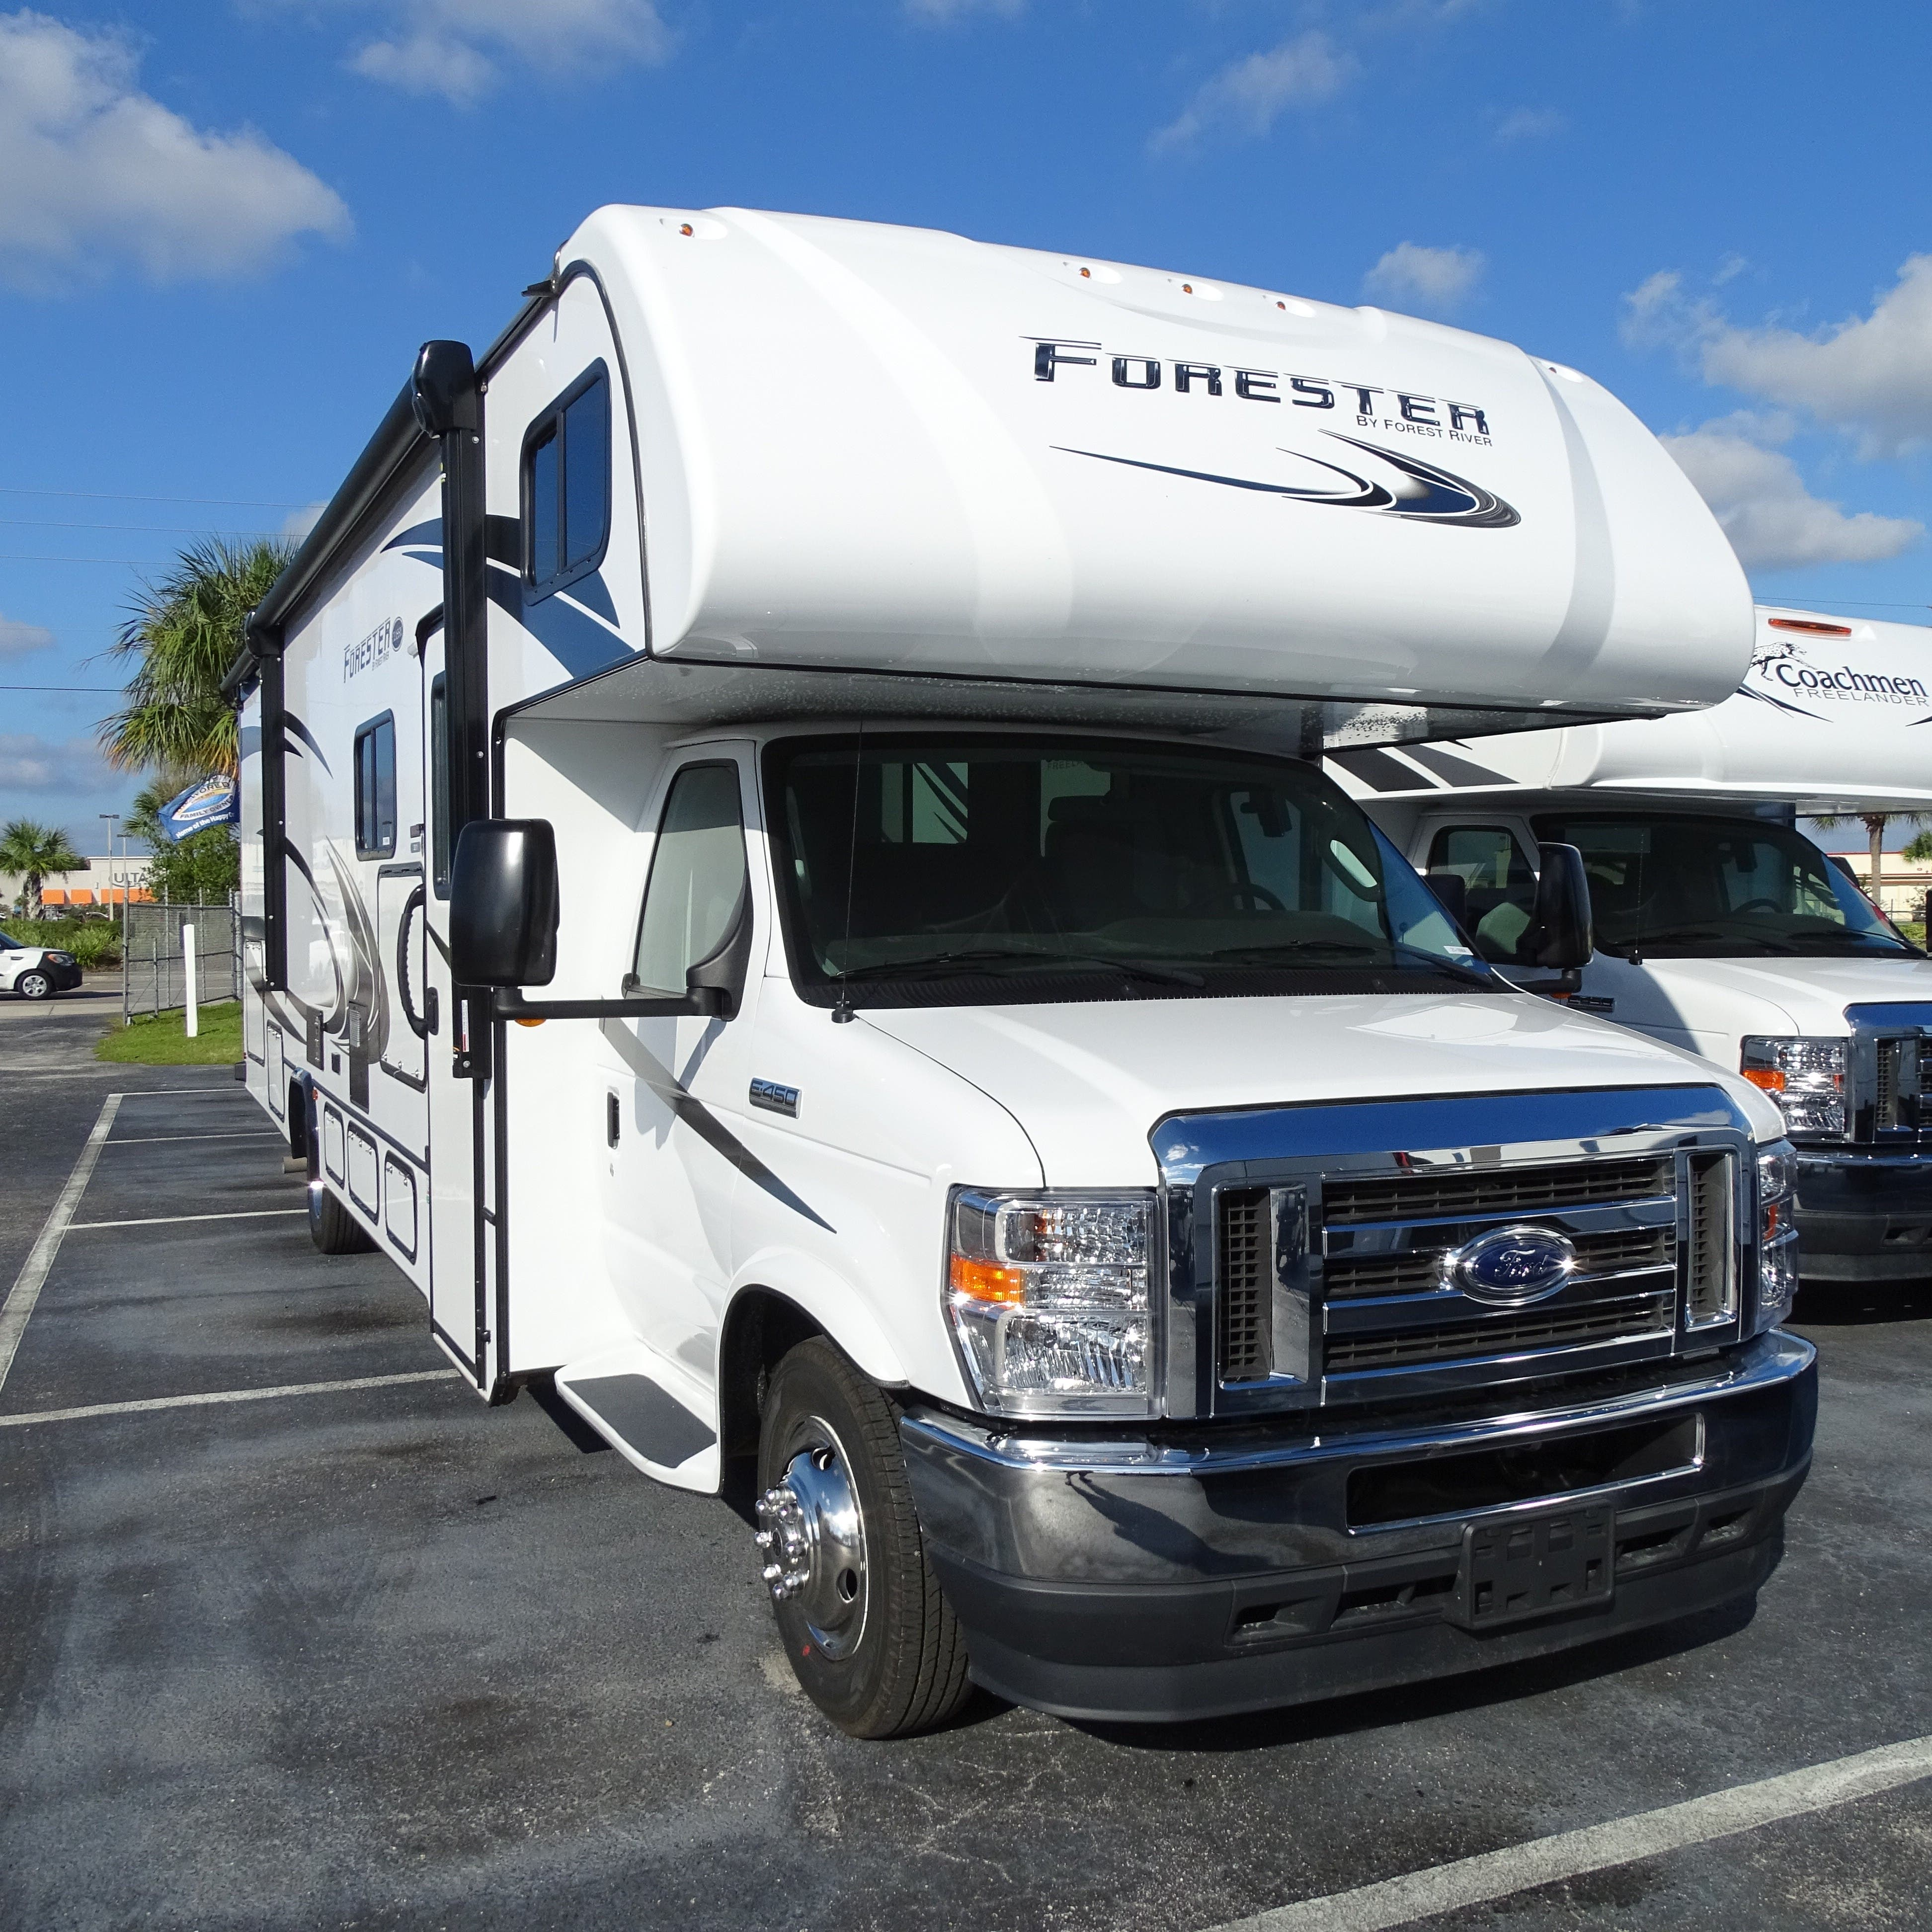 2021 Forest River Forester 3011DS